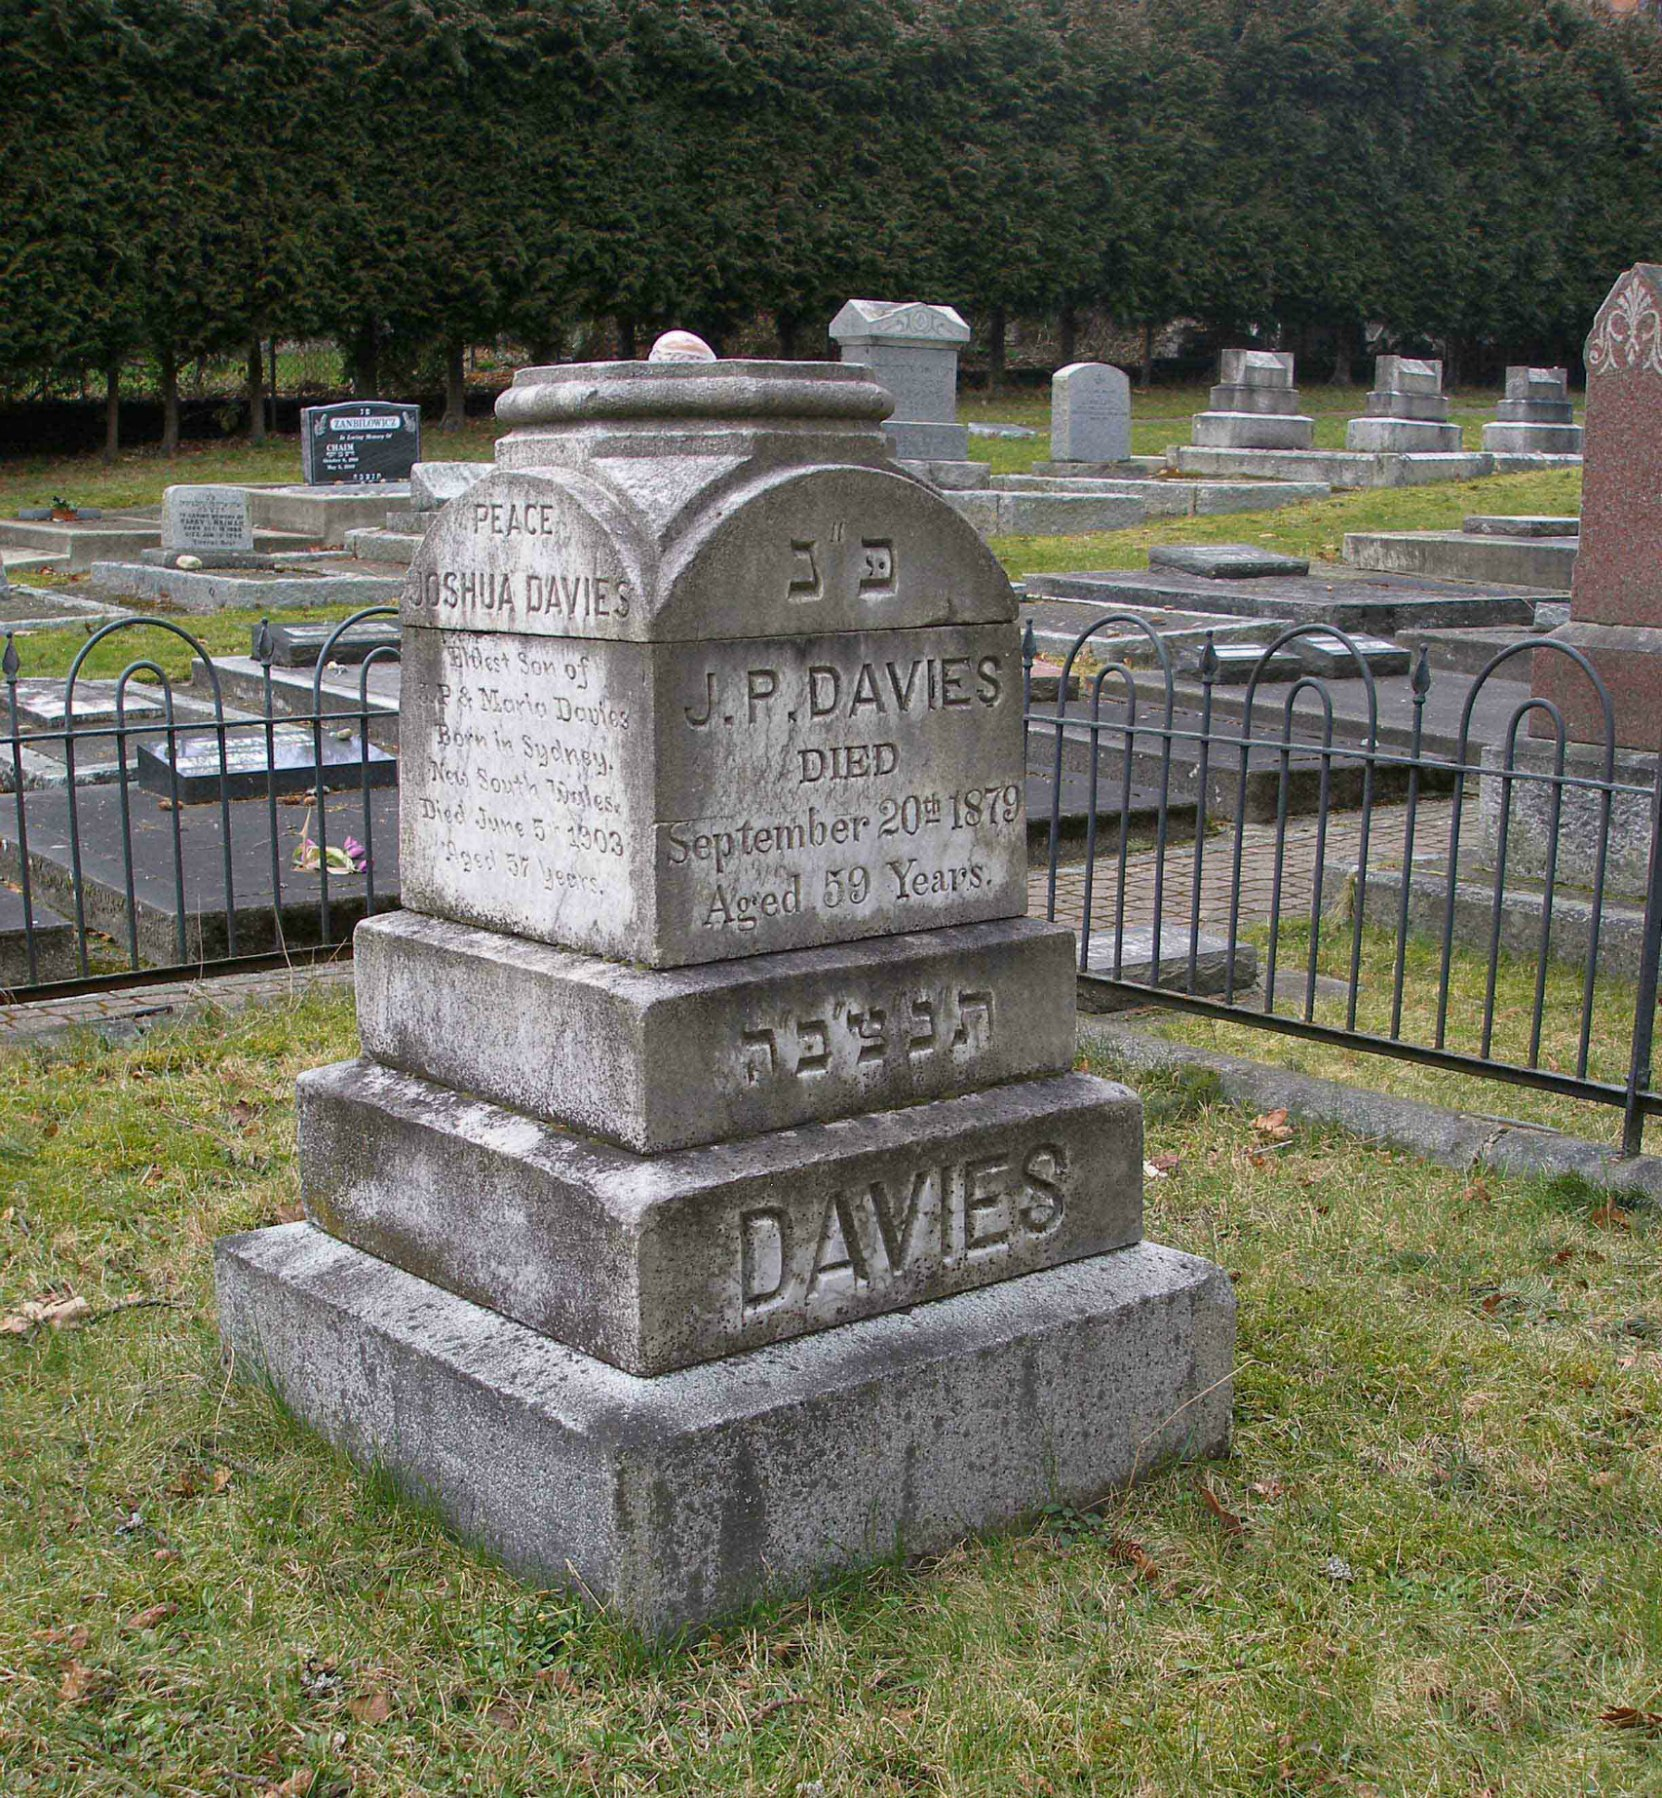 The grave stone of Judah Philip Davies and Joshua Philip Davies (1846-1903), Victoria Jewish Cemetery